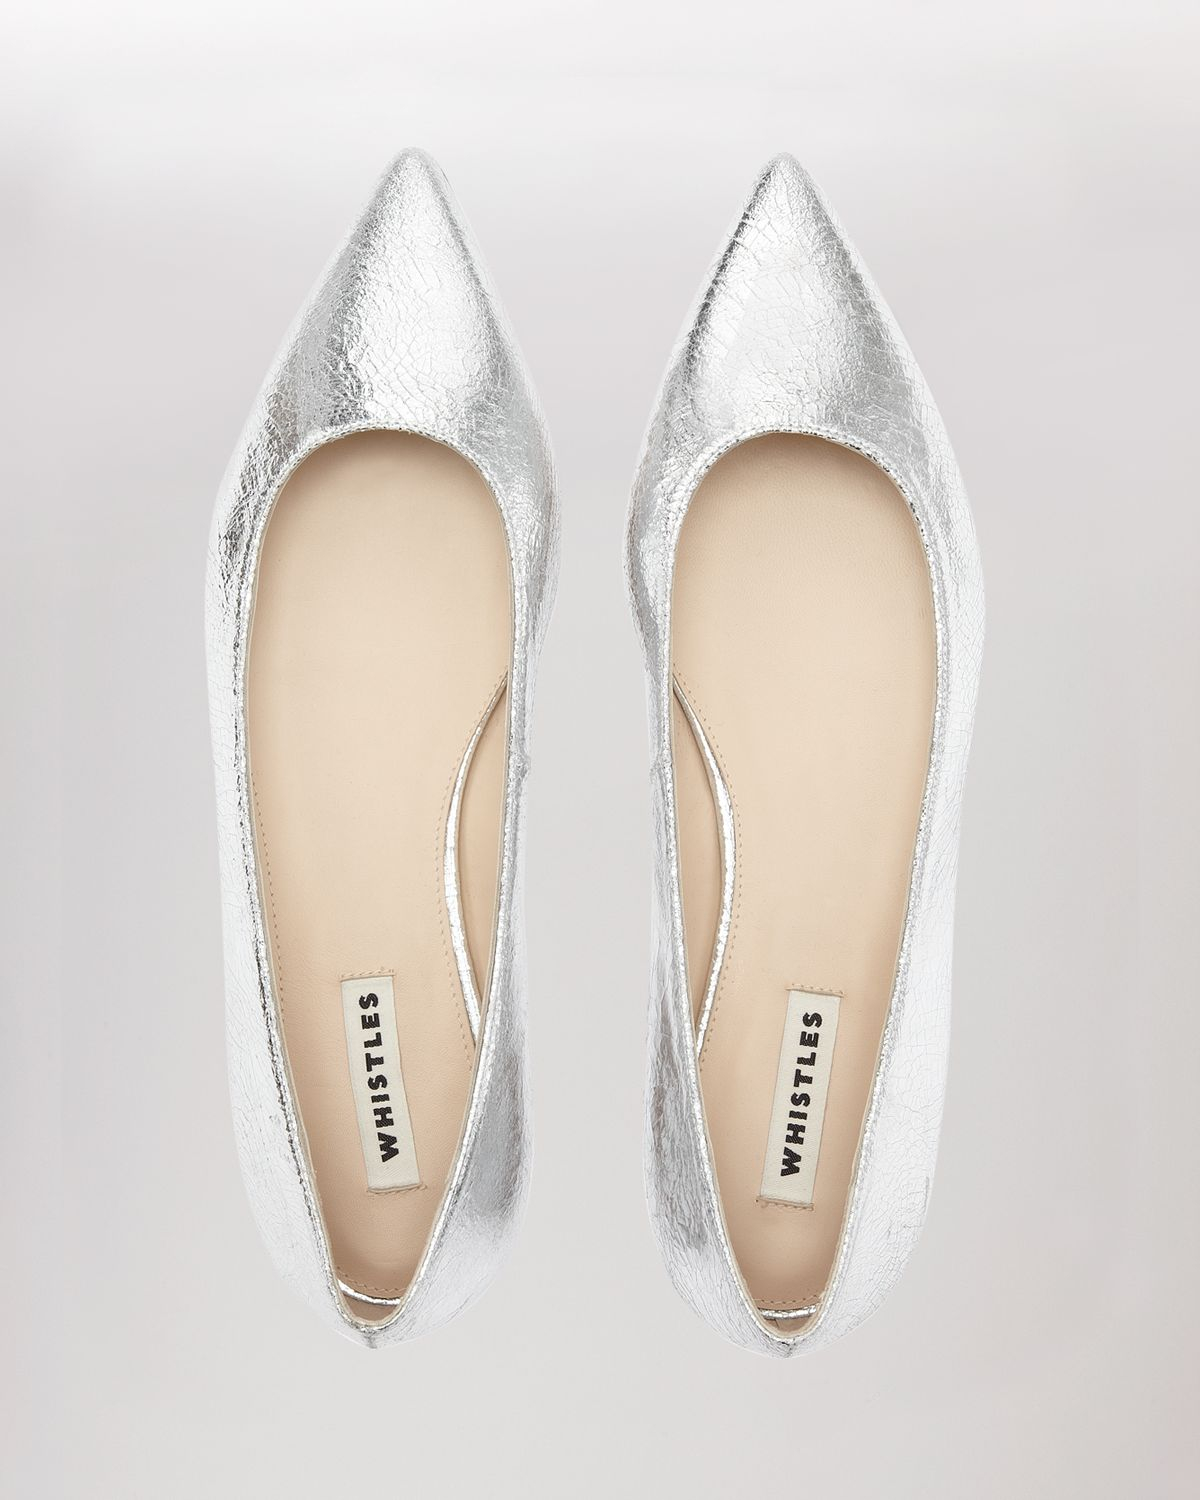 5edae0b0992 Lyst - Whistles Pointed Toe Flats - Brigette Metallic in Metallic